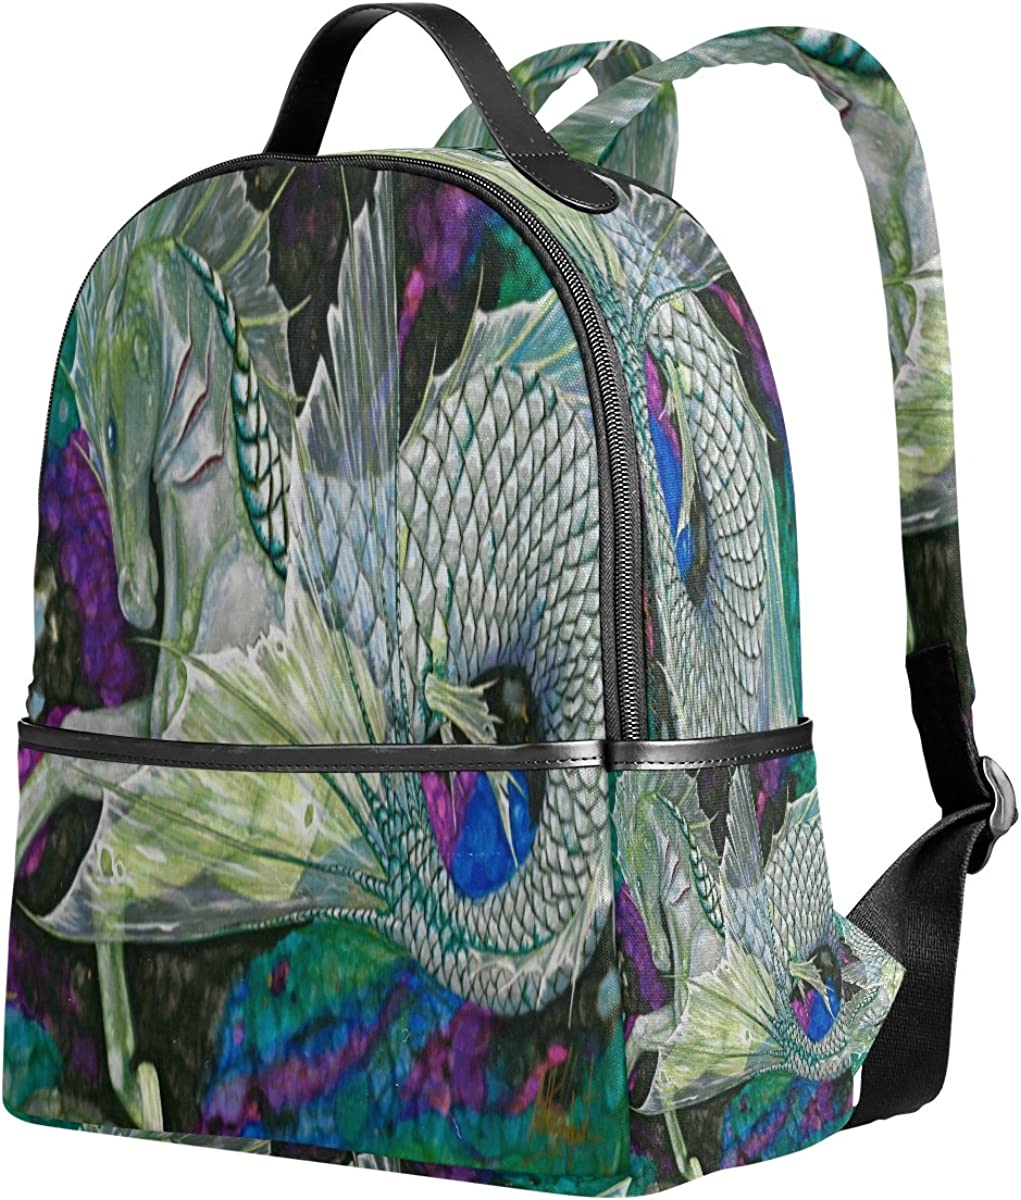 Mr.Weng Watercolor Horse Printed Canvas Backpack For Girl and Children